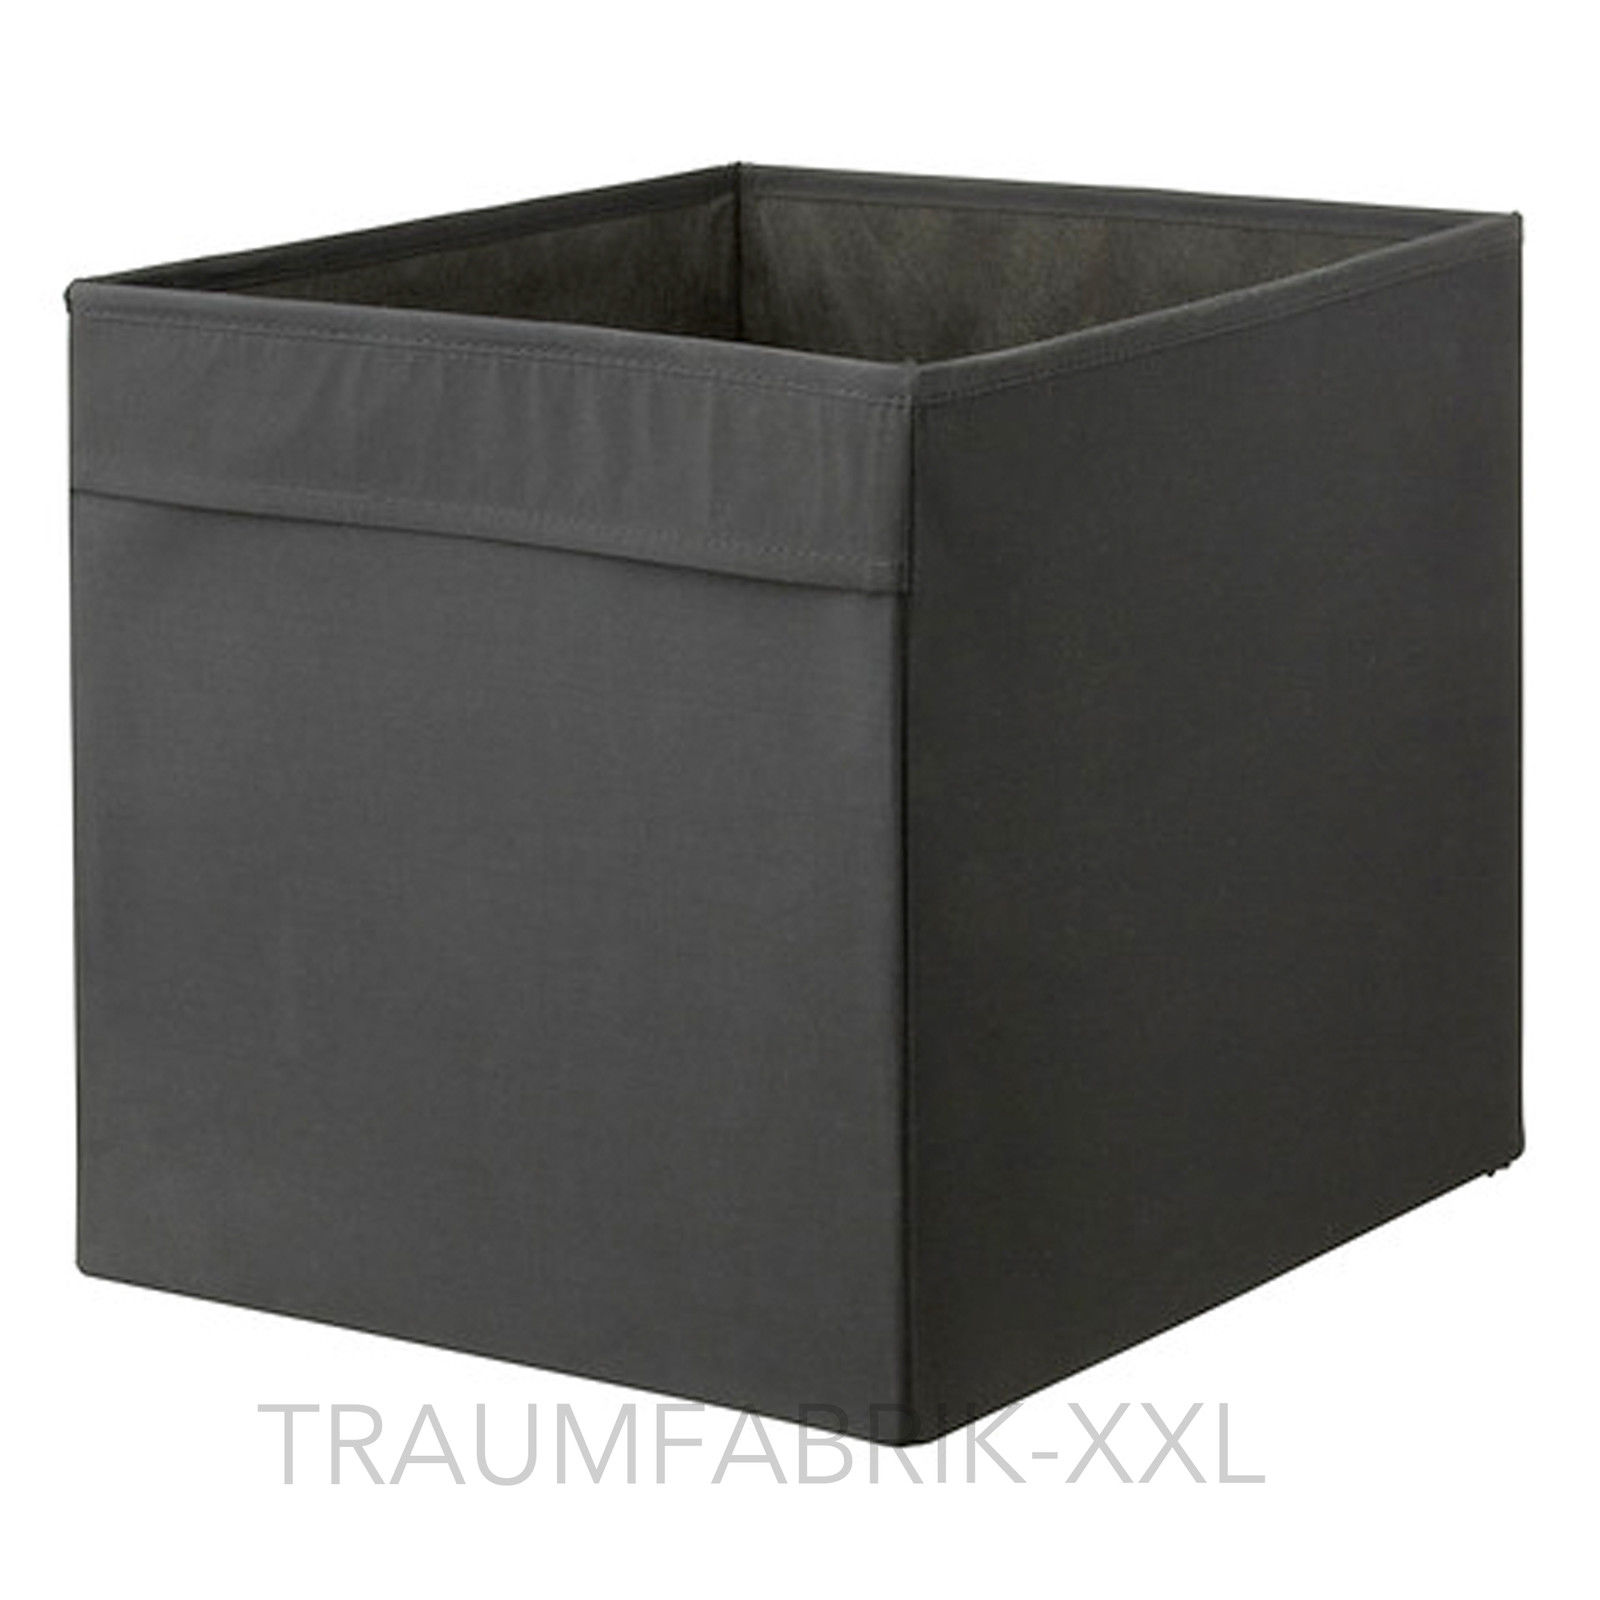 ikea dr na fach box f r expedit kallax regal kiste aufbewahrungsbox schwarz neu traumfabrik xxl. Black Bedroom Furniture Sets. Home Design Ideas